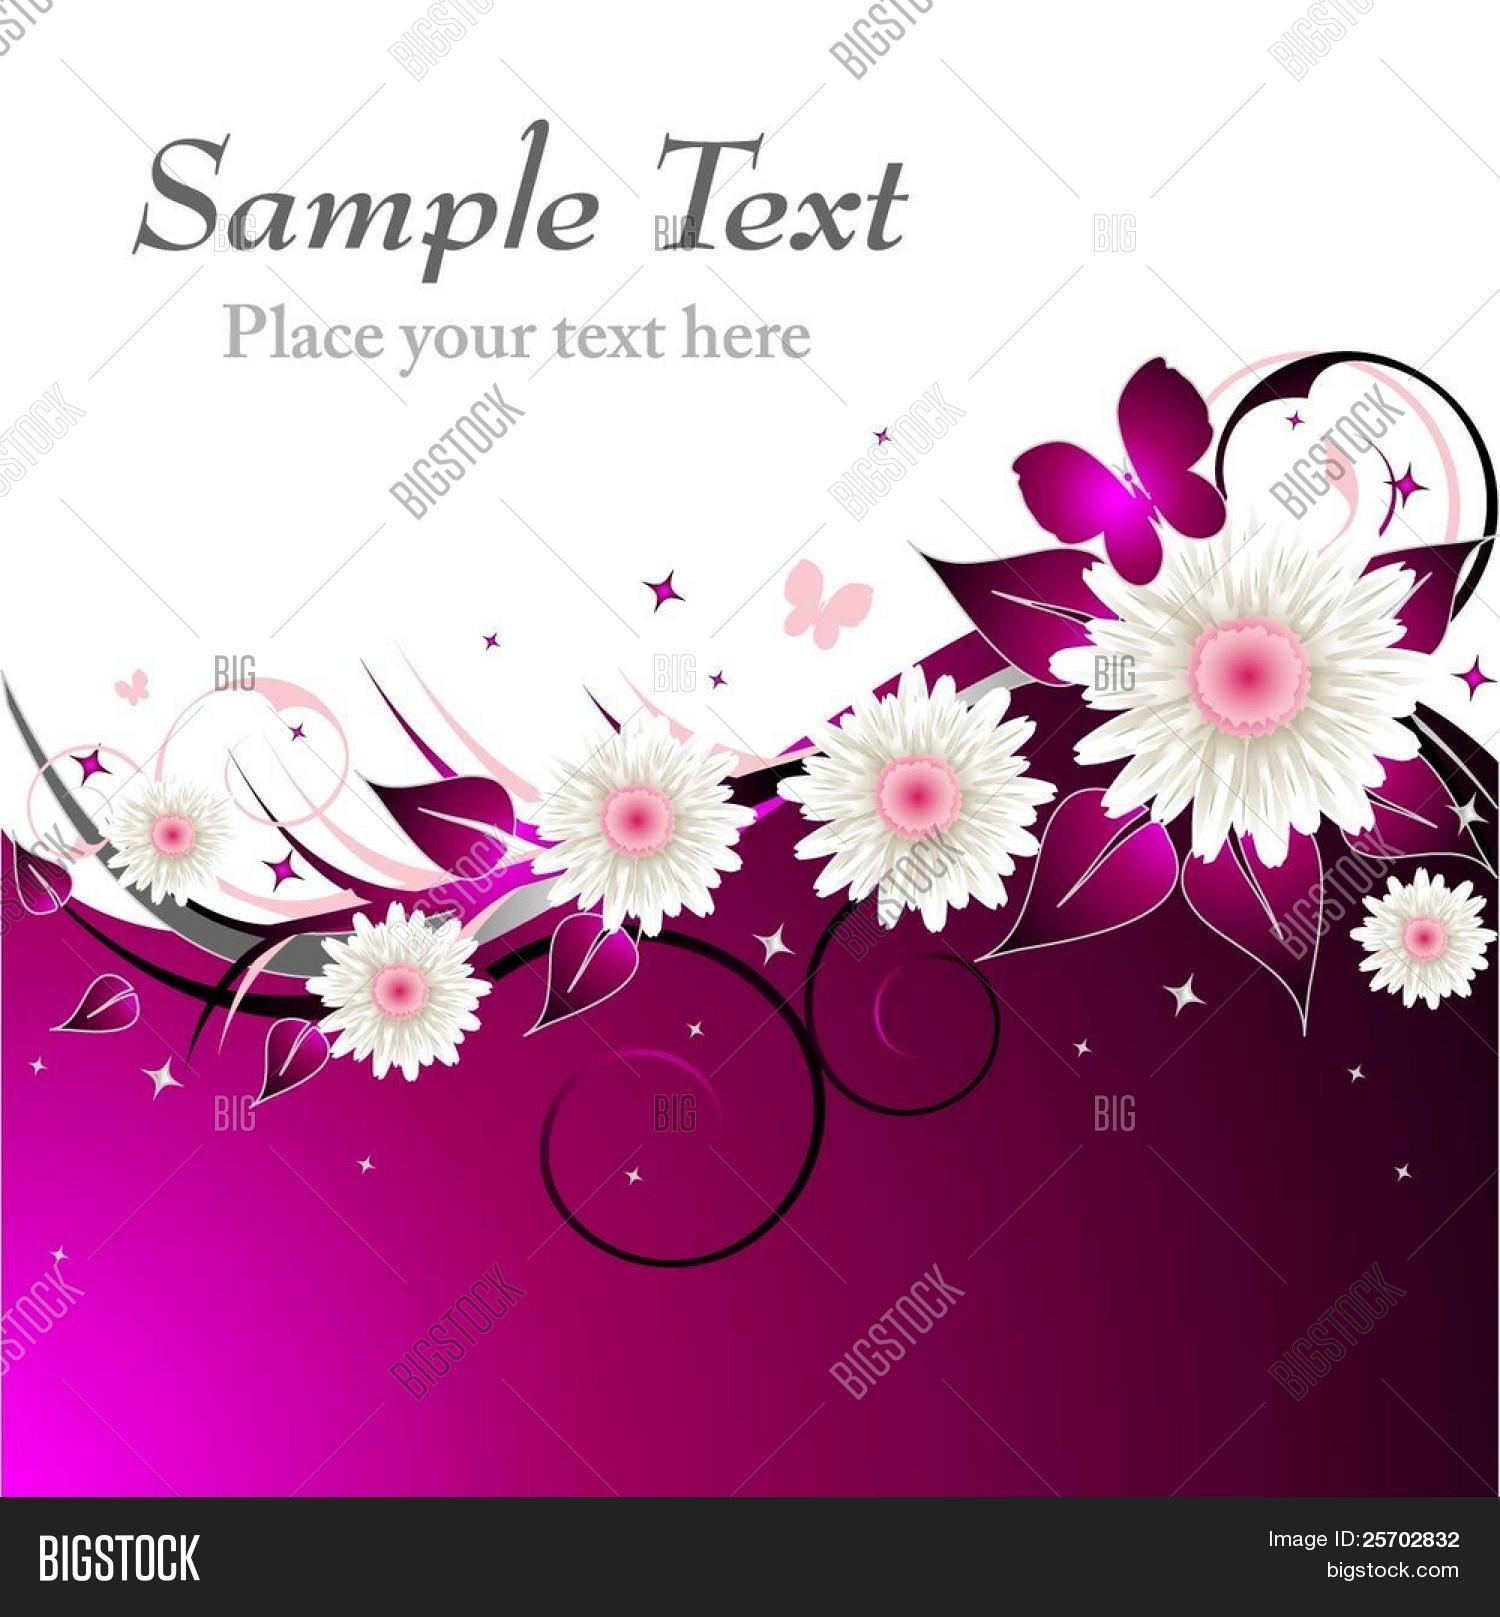 Pink Floral Abstract Vector Photo Free Trial Bigstock